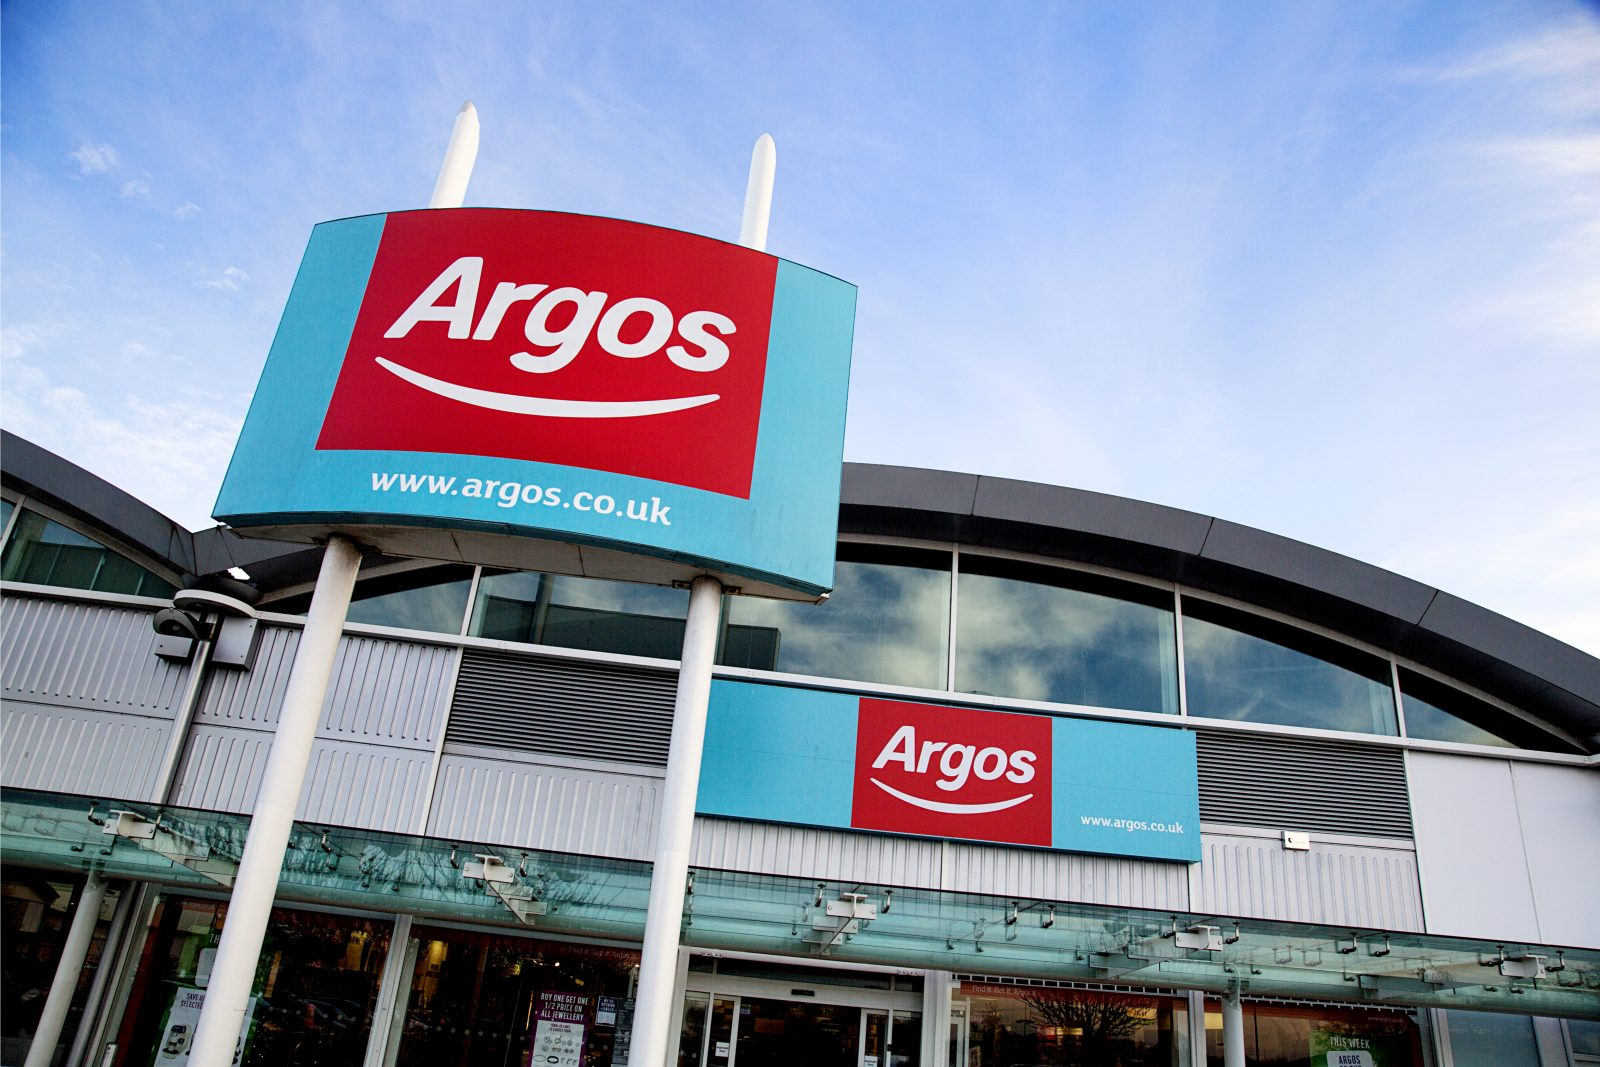 Argos Returns and Refunds (2018 Guide)